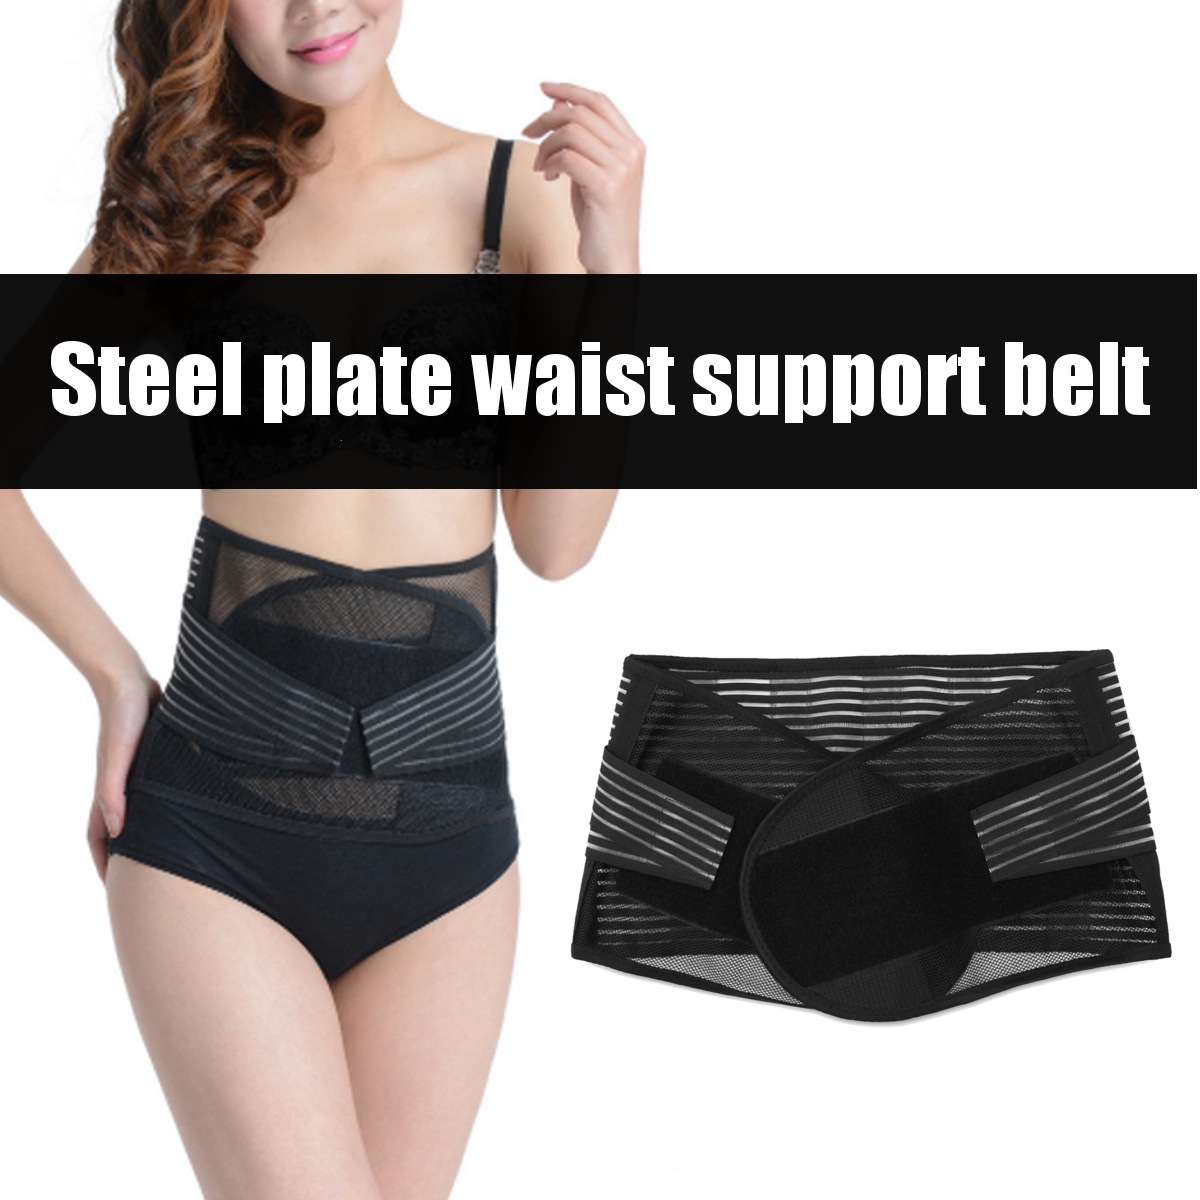 Adjustable Man Woman Breathable Back Support Brace Belt Stabilizing Lumbar Lower Waist Dual Straps Correct  Flexible Brace for Sciatica, Scoliosis Herniated Disc+Metal Boning